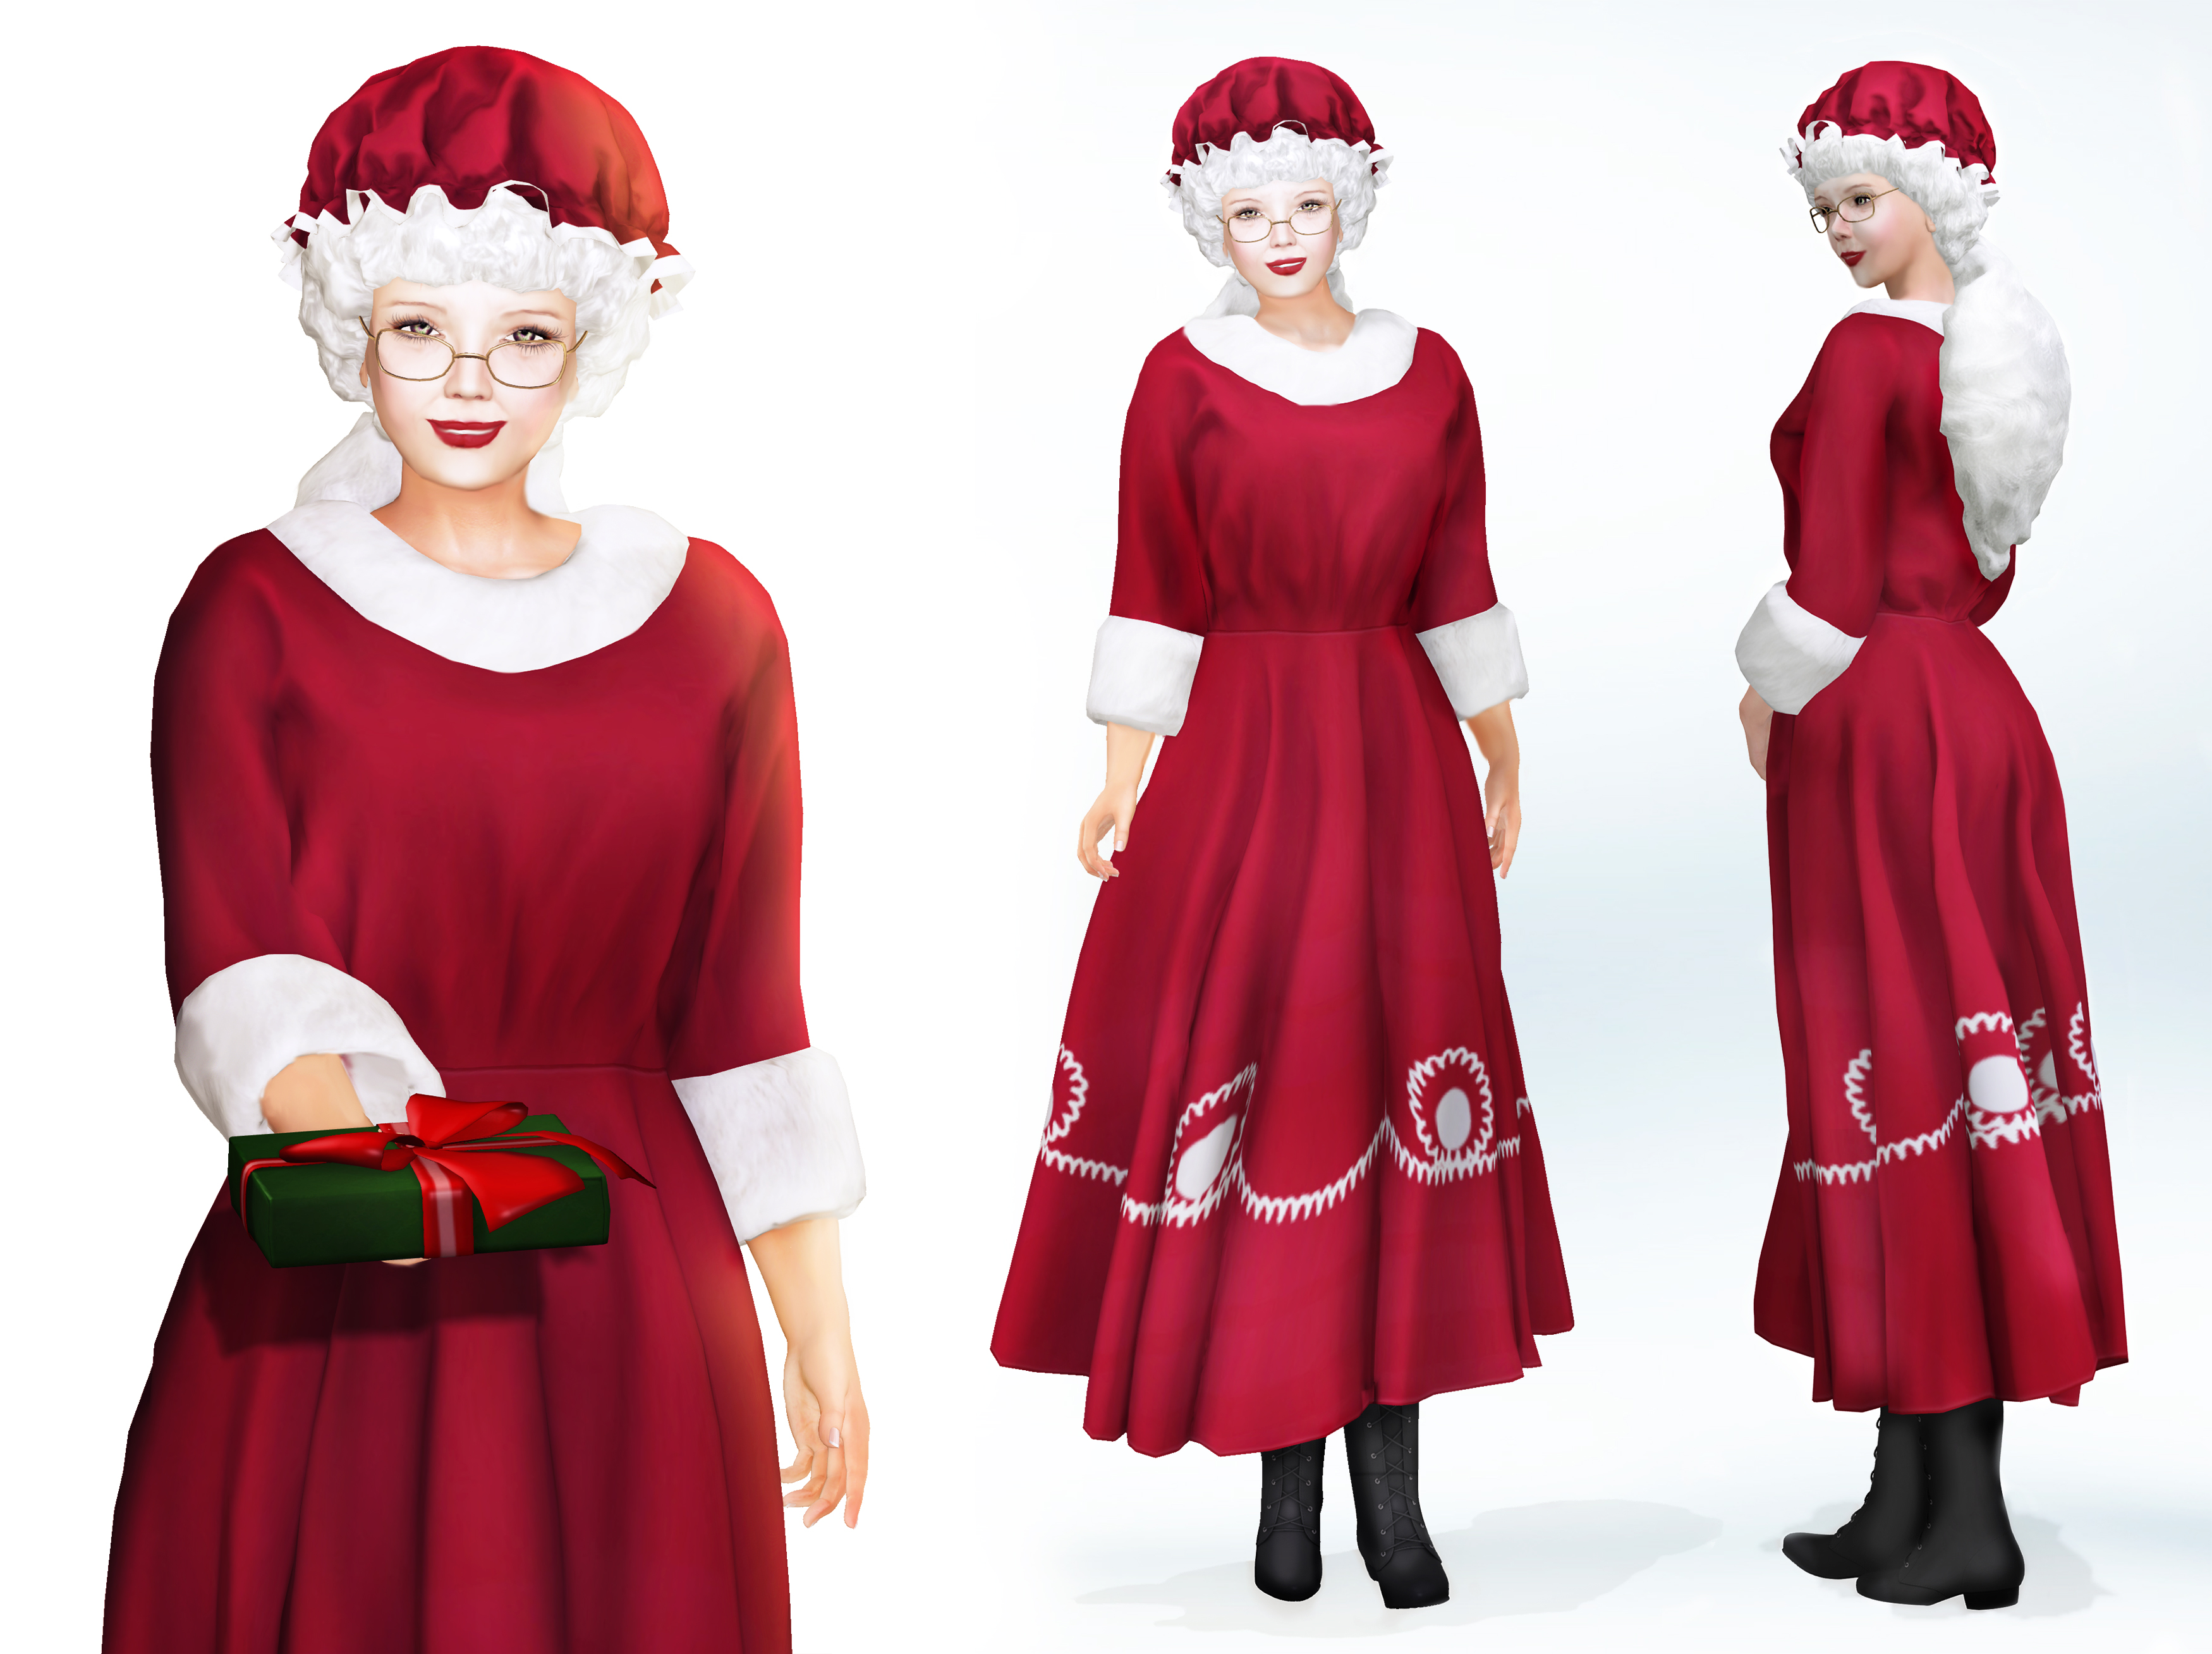 mkt-mrs-santa-outfit-empty